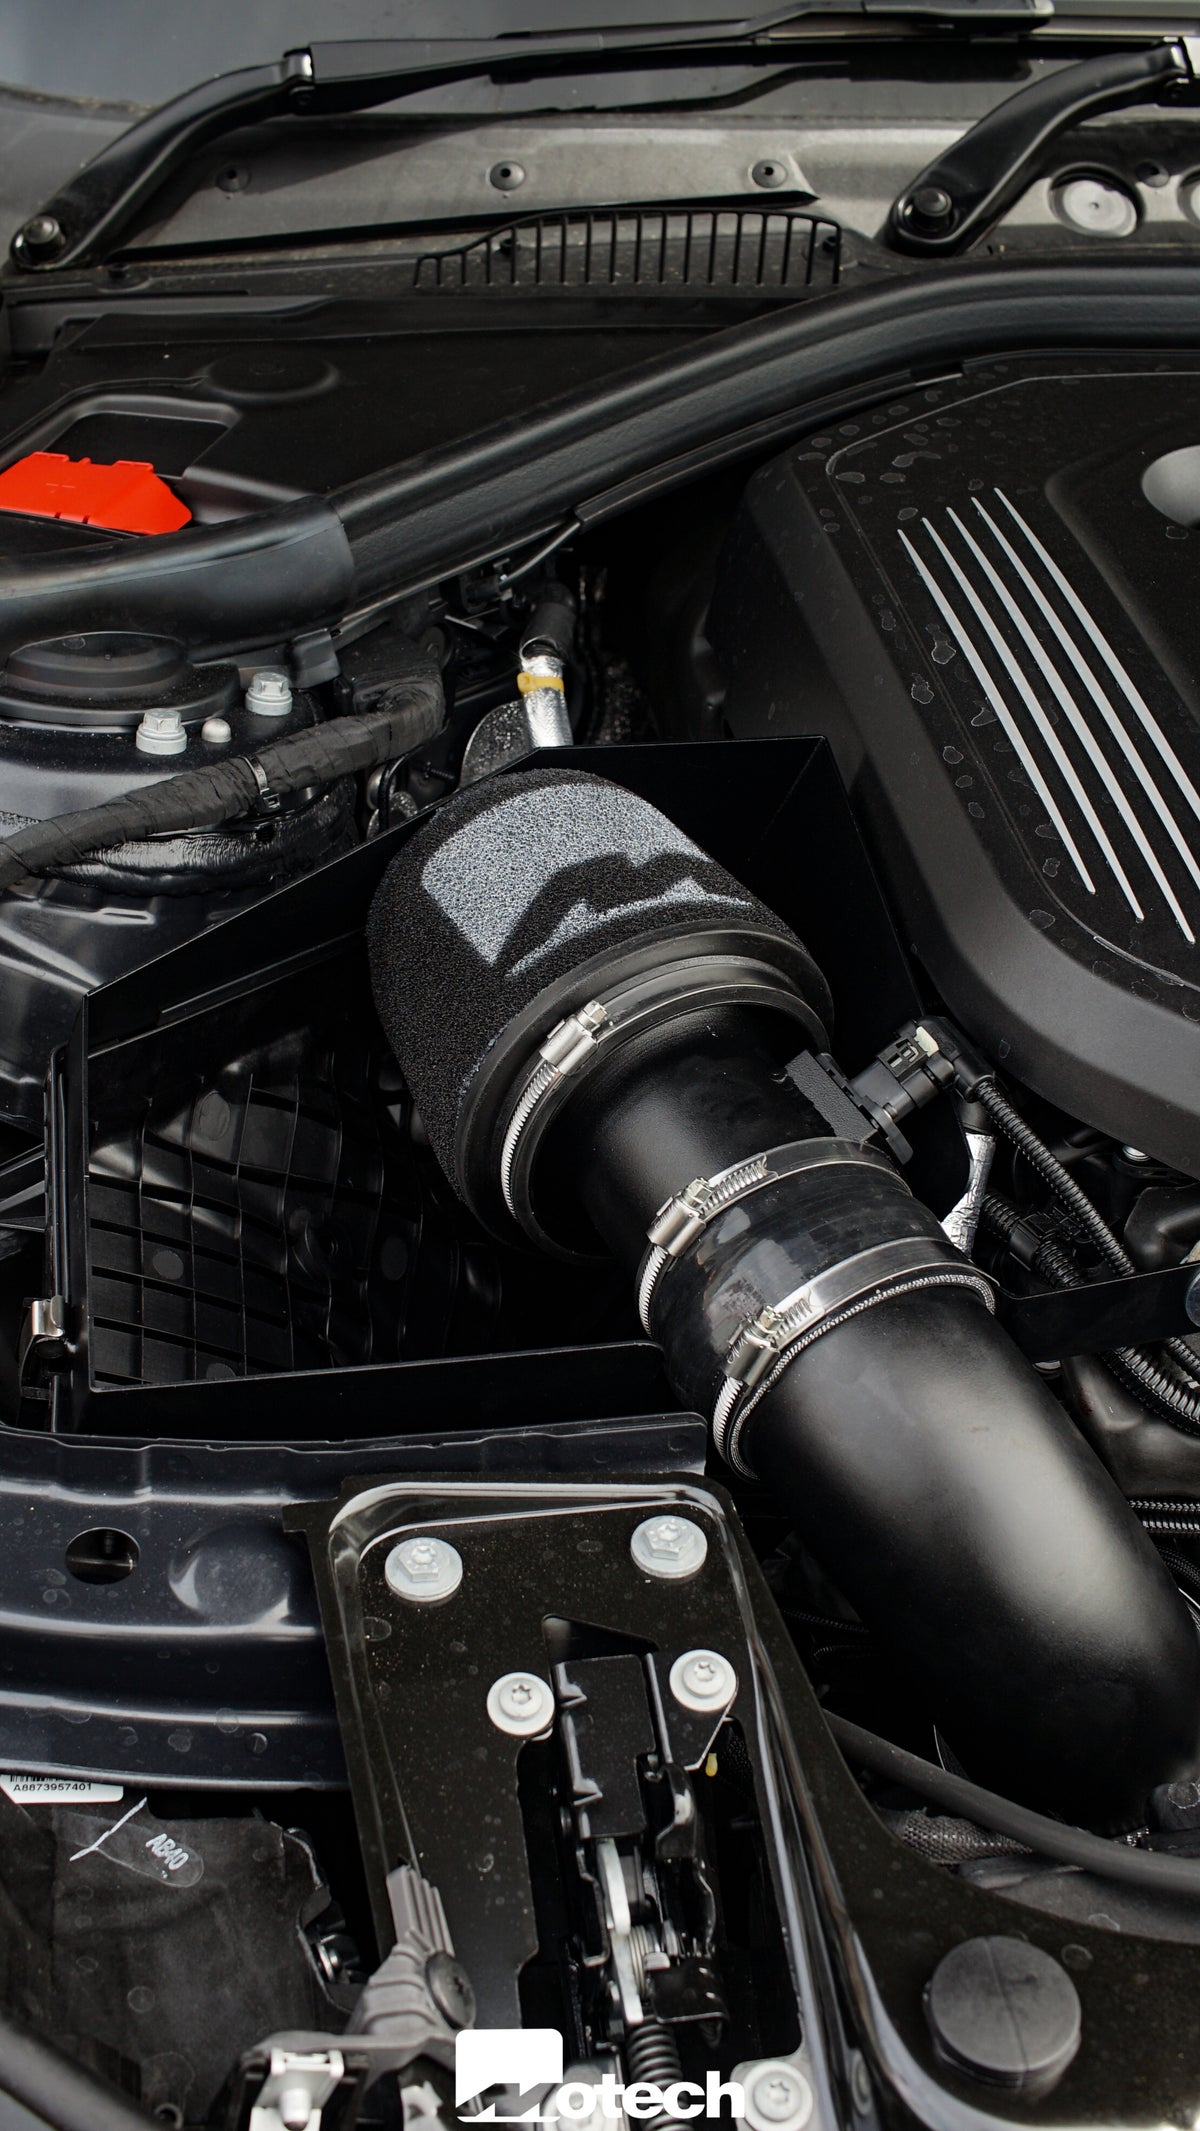 Image of Motech Pipercross Intake M140/M240/340/440 BMW B58